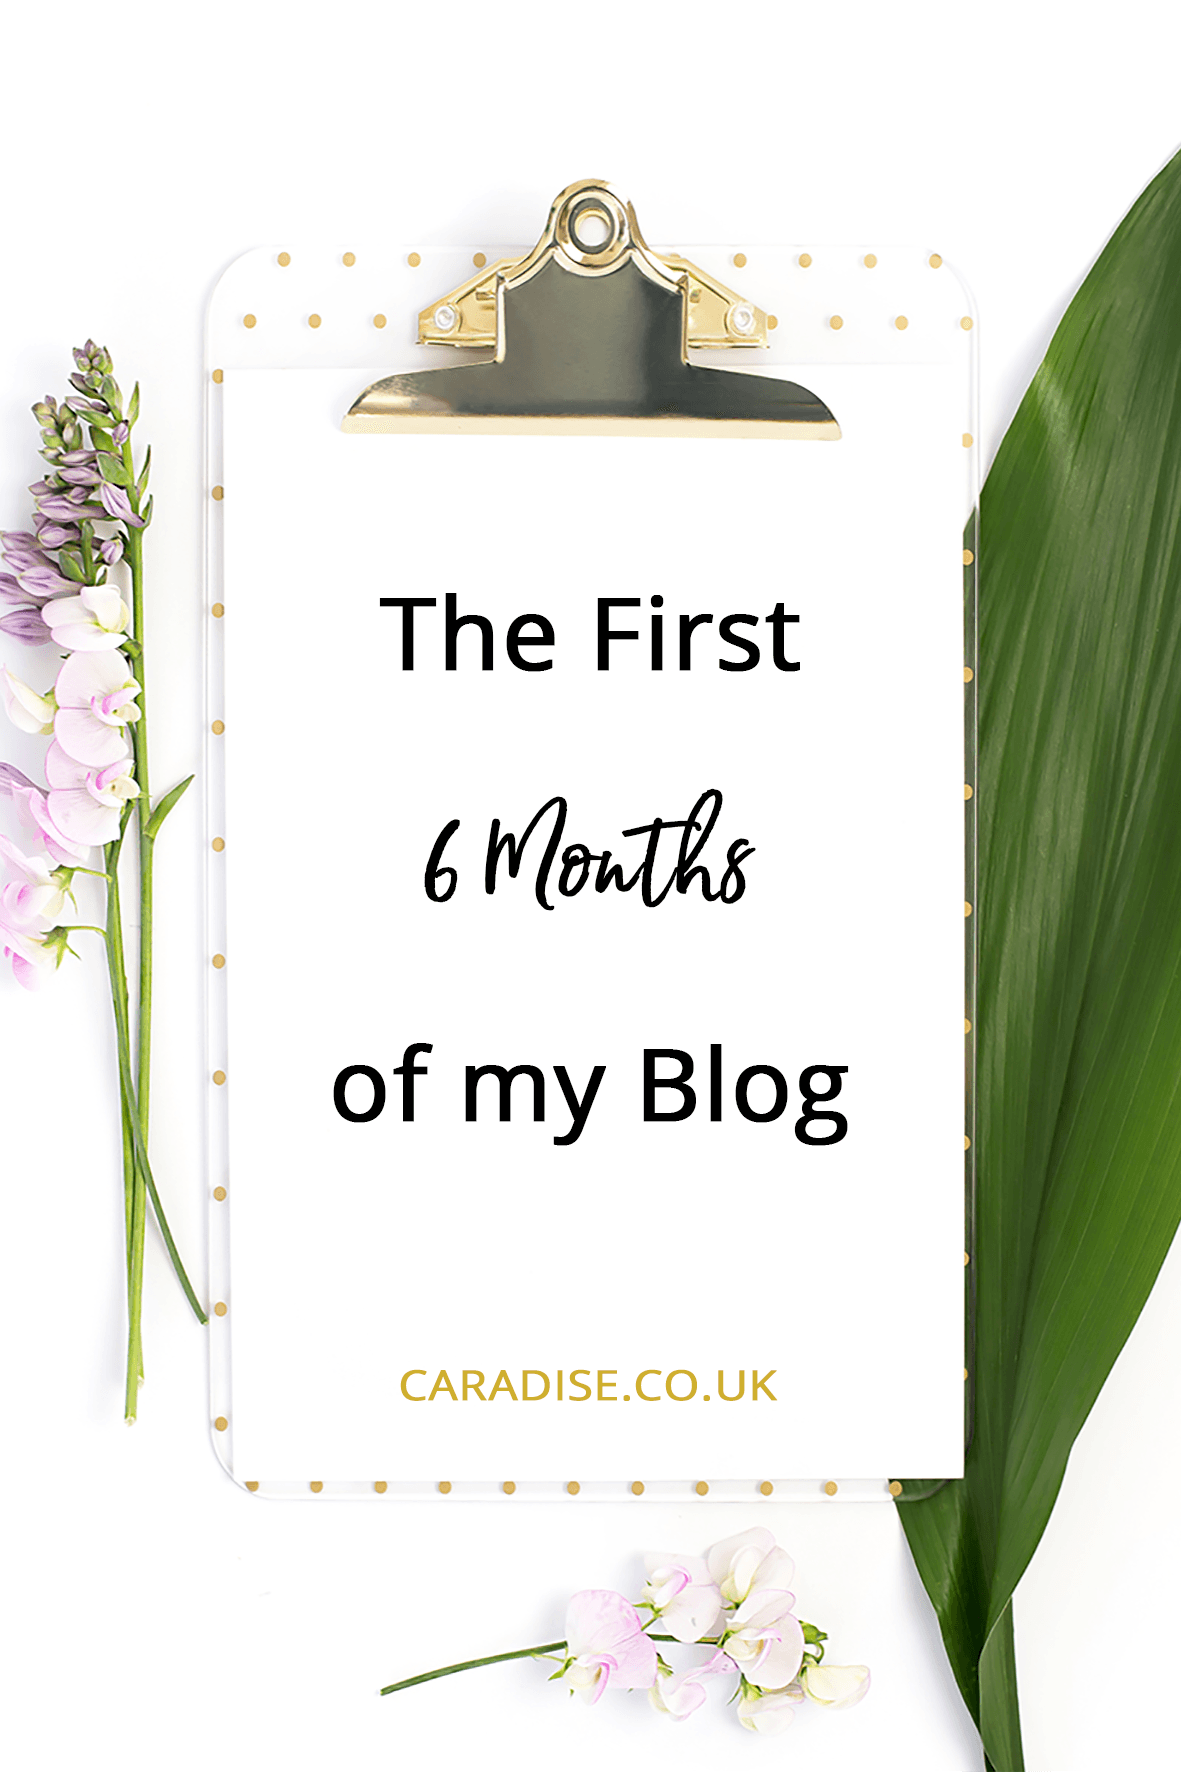 A look back at the First 6 Months of my Blog in 2017